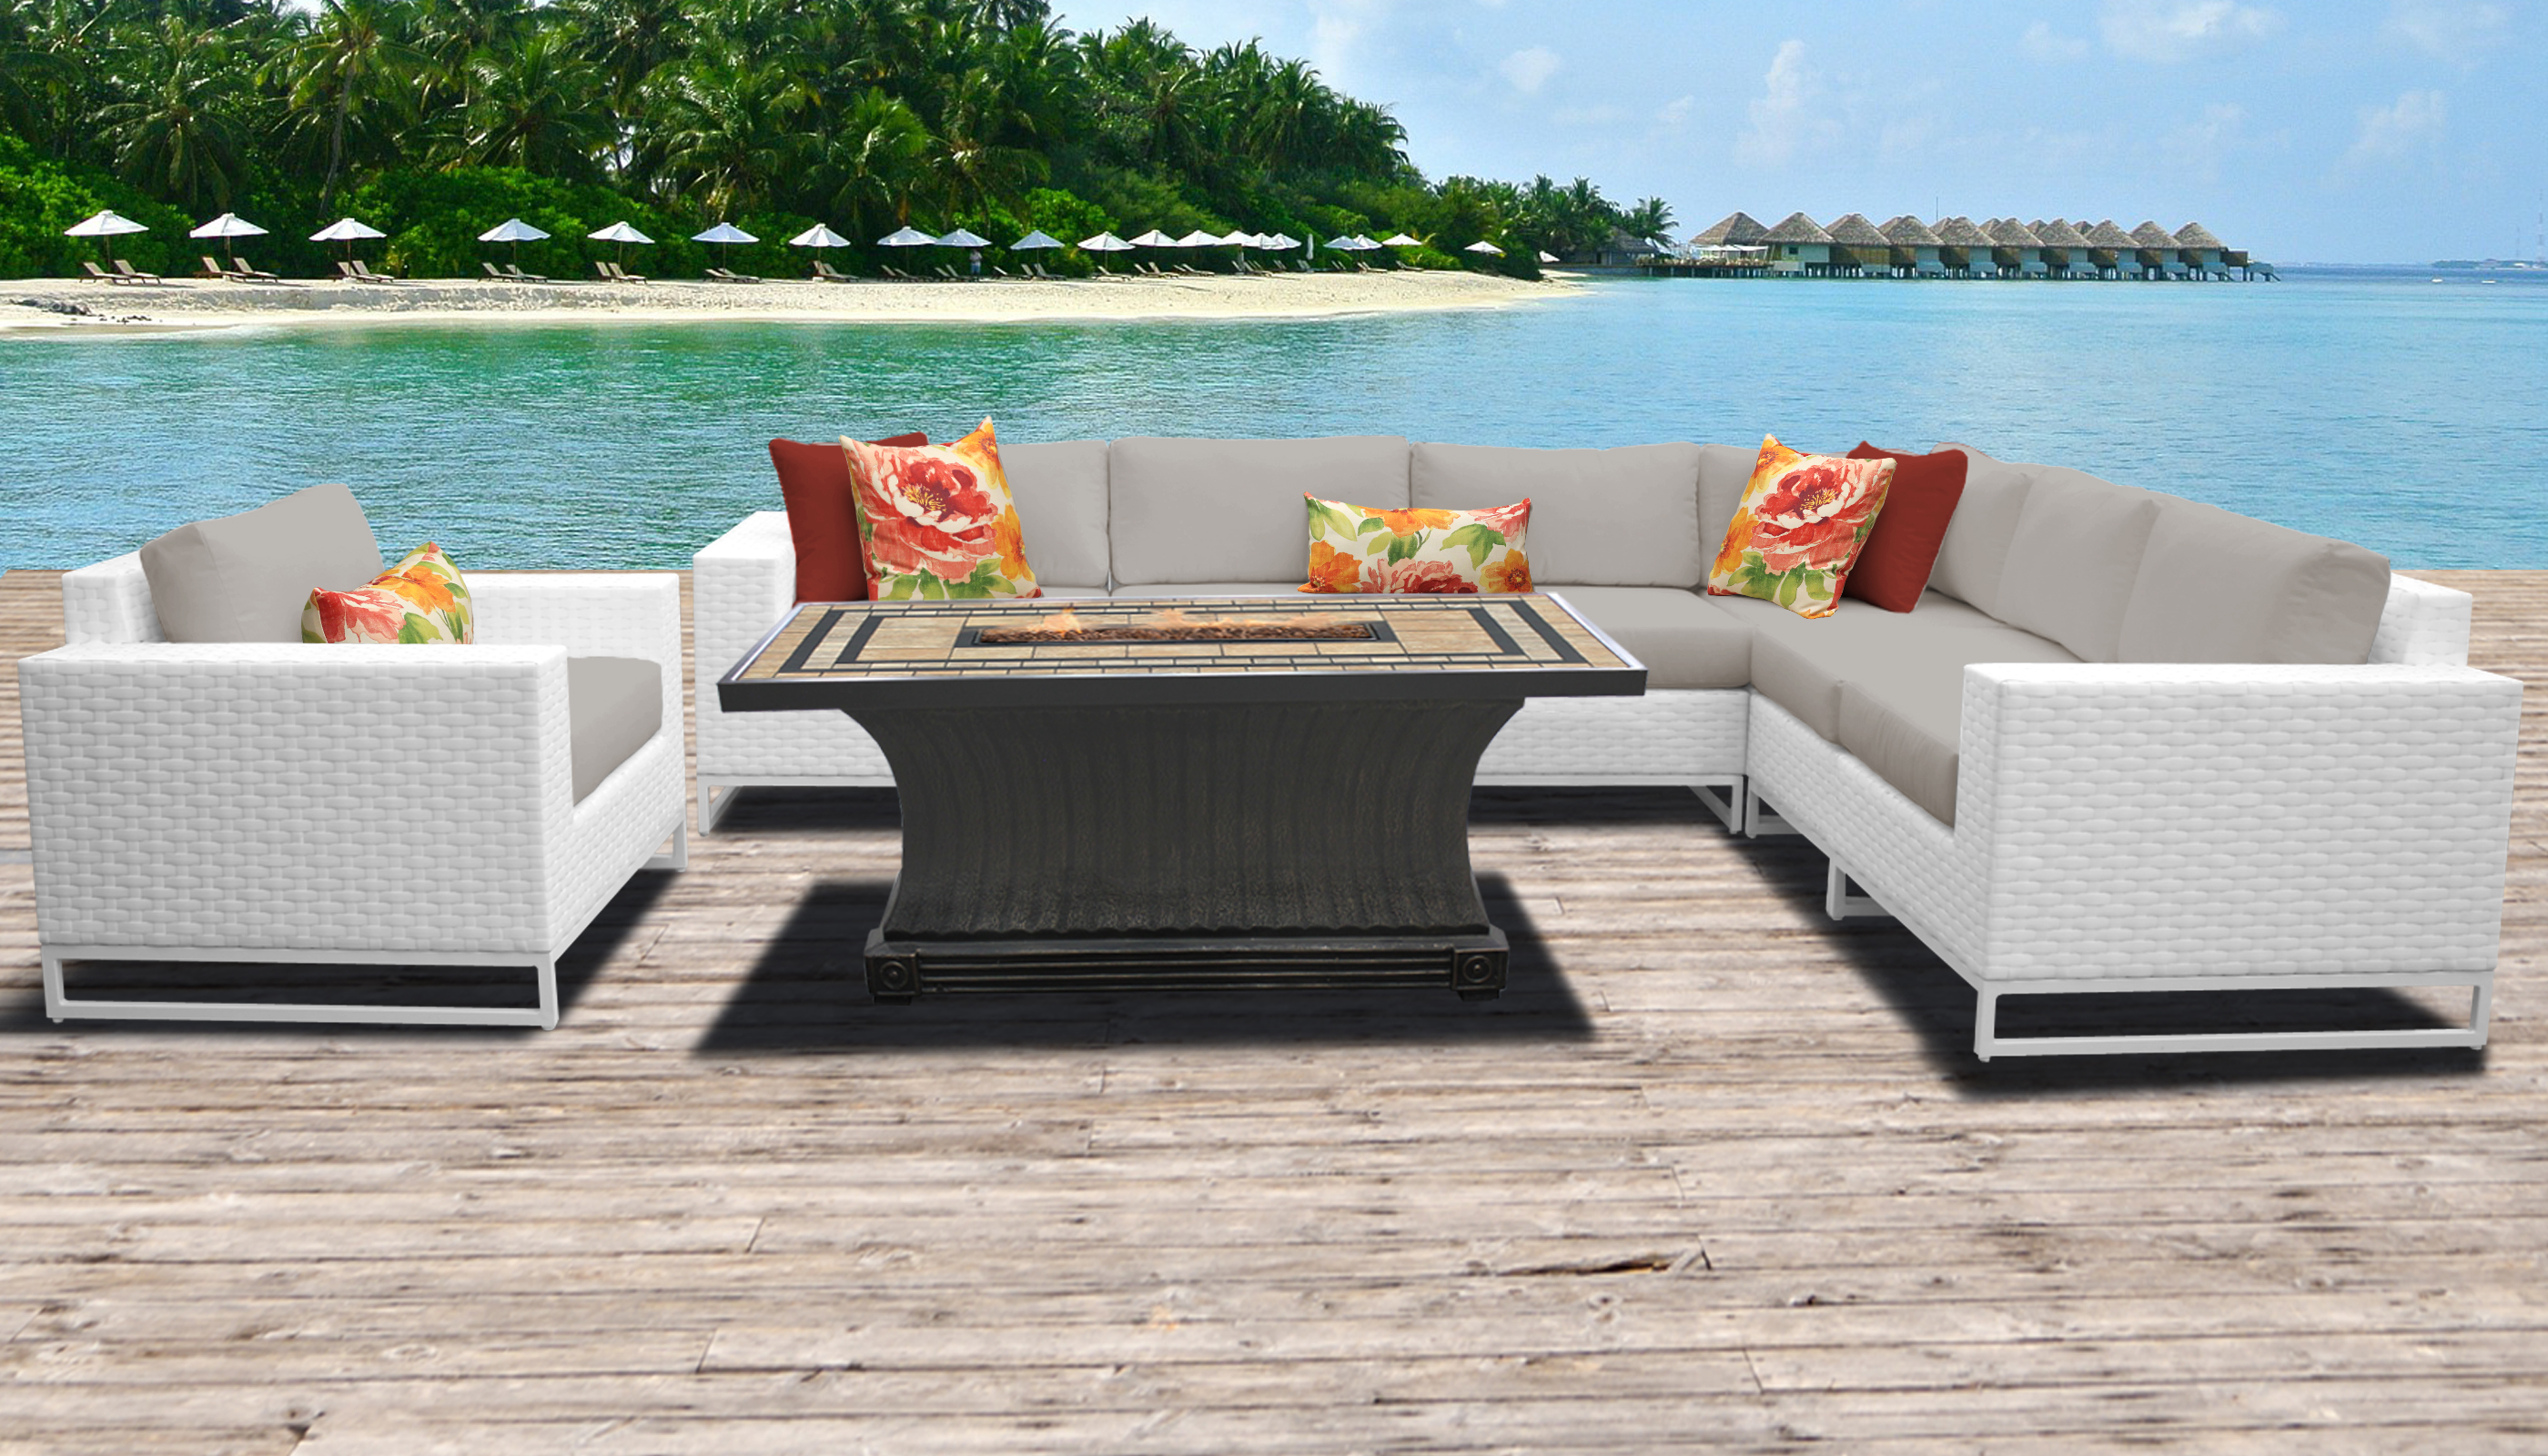 Miami 8 Piece Outdoor Wicker Patio Furniture Set 08d pertaining to sizing 2800 X 1600